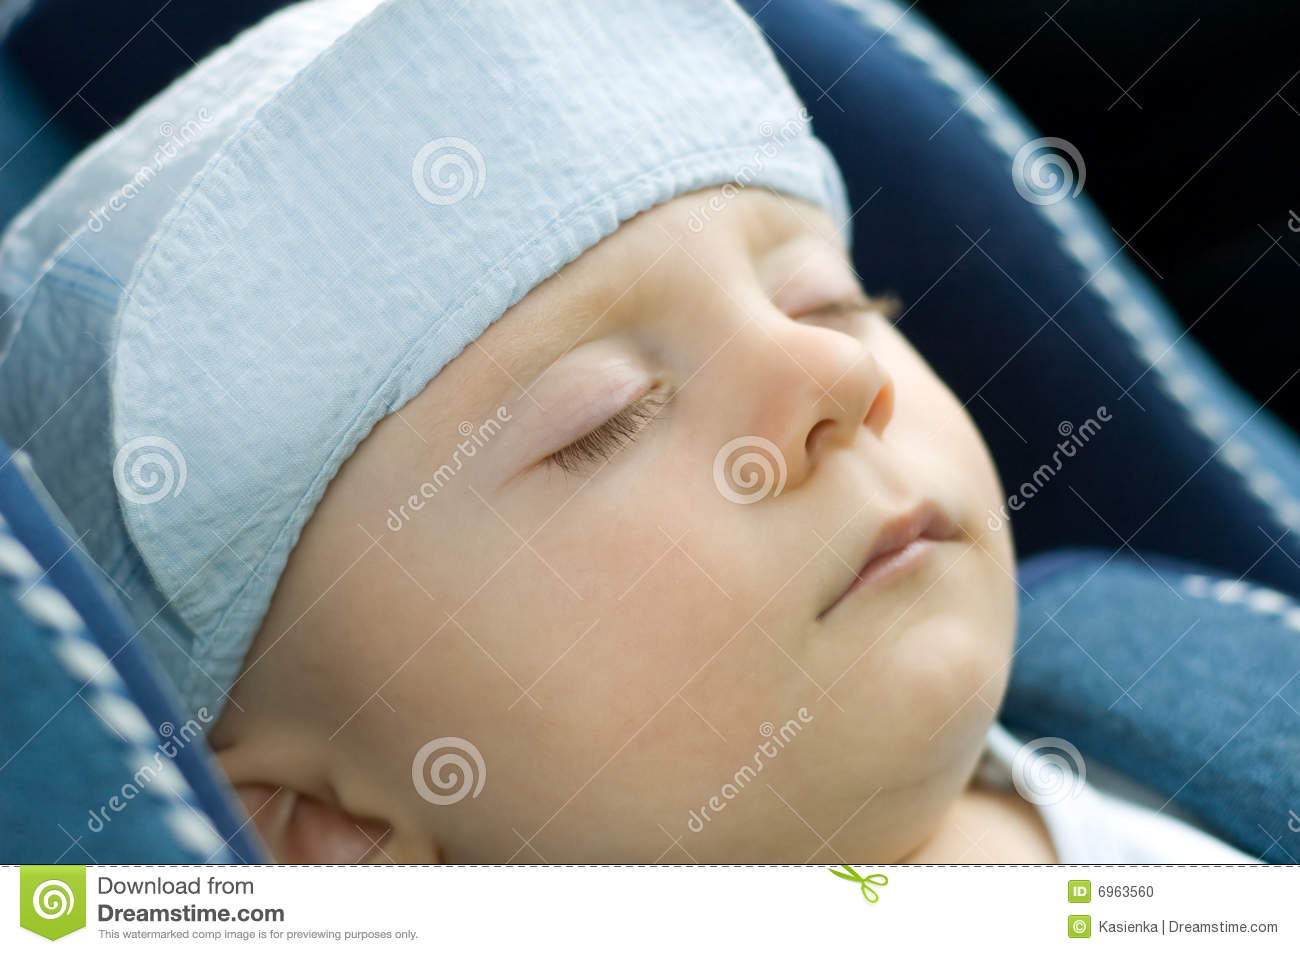 cute baby boy sleeping in car stock photo - image of person, quiet